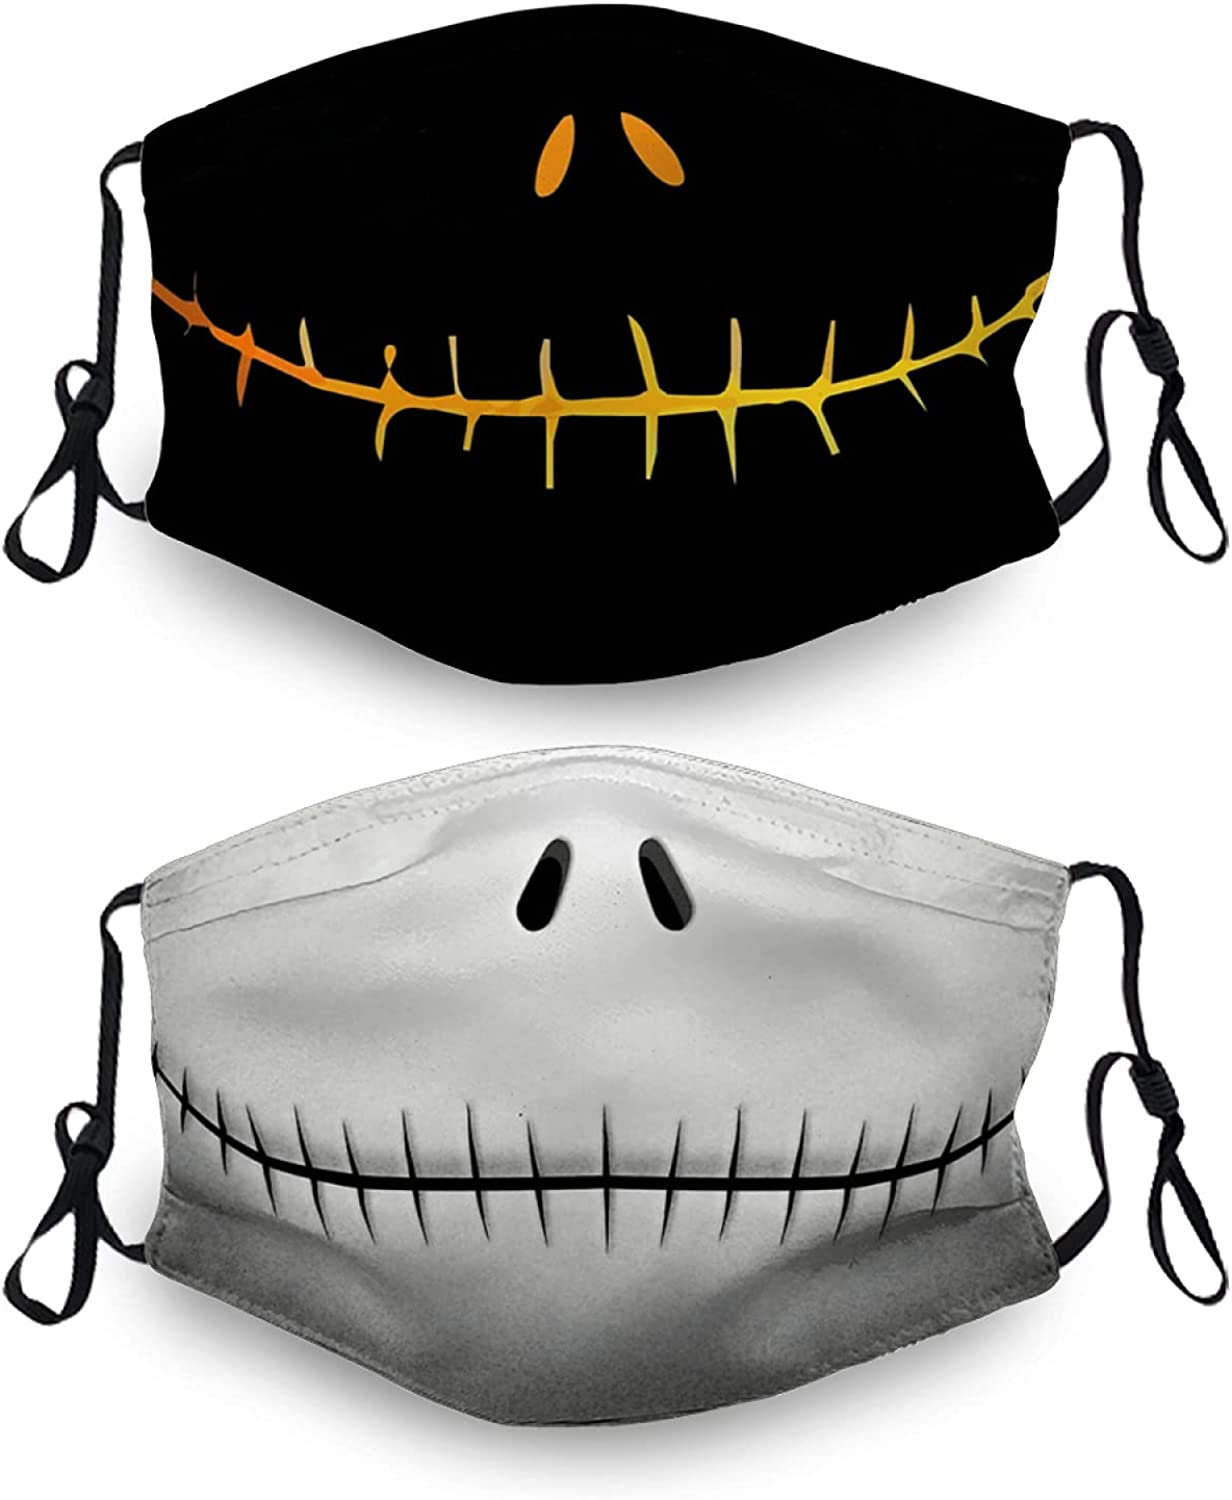 The Nightmare Before Christmas Mouth Cover with 4 Filter, Breathable-Adjustable Filters for Adults